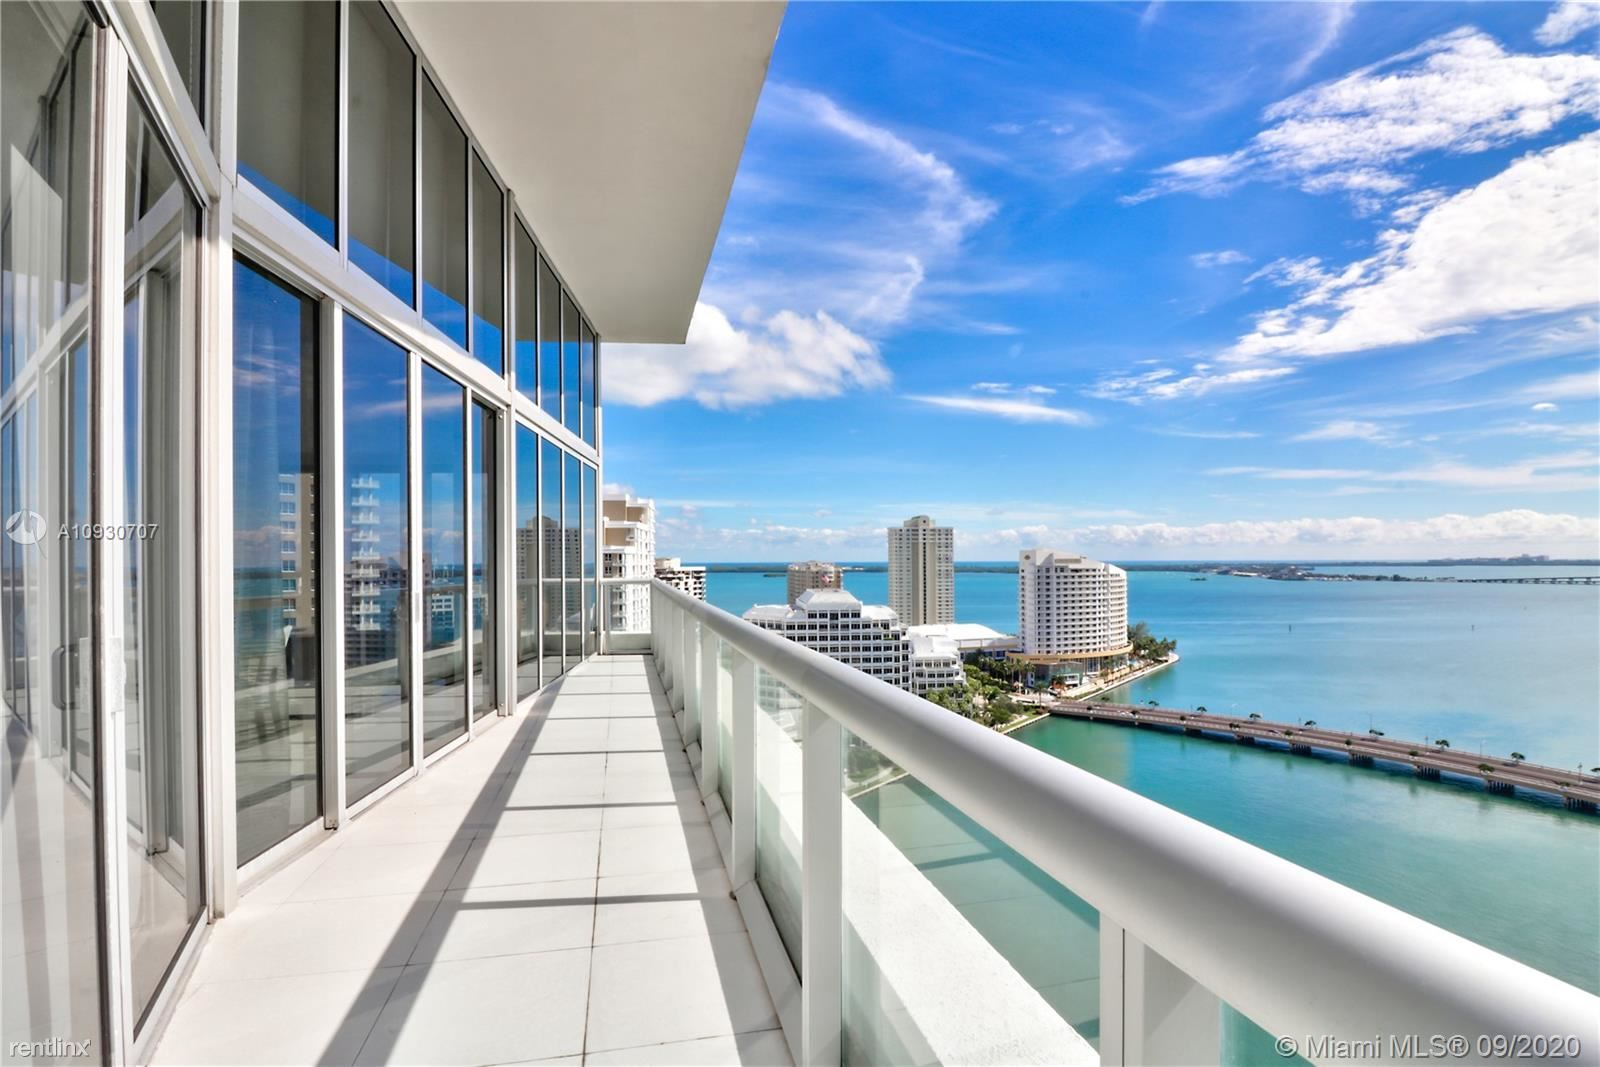 495 Brickell Ave, Miami, FL - $7,950